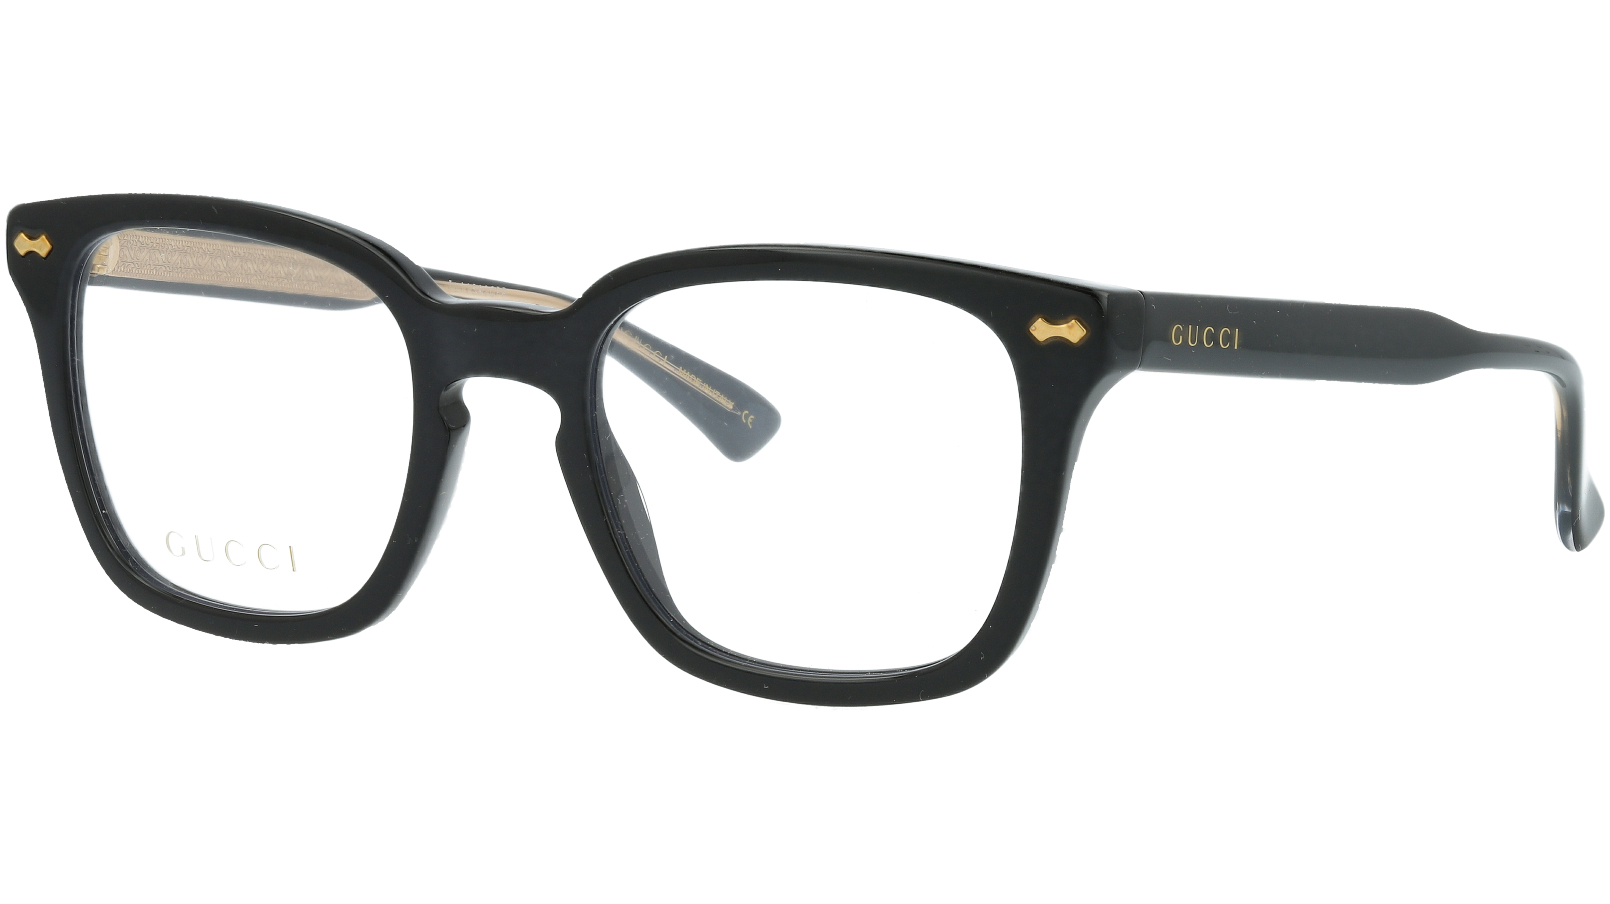 GUCCI GG0184O 001 50 BLACK Glasses